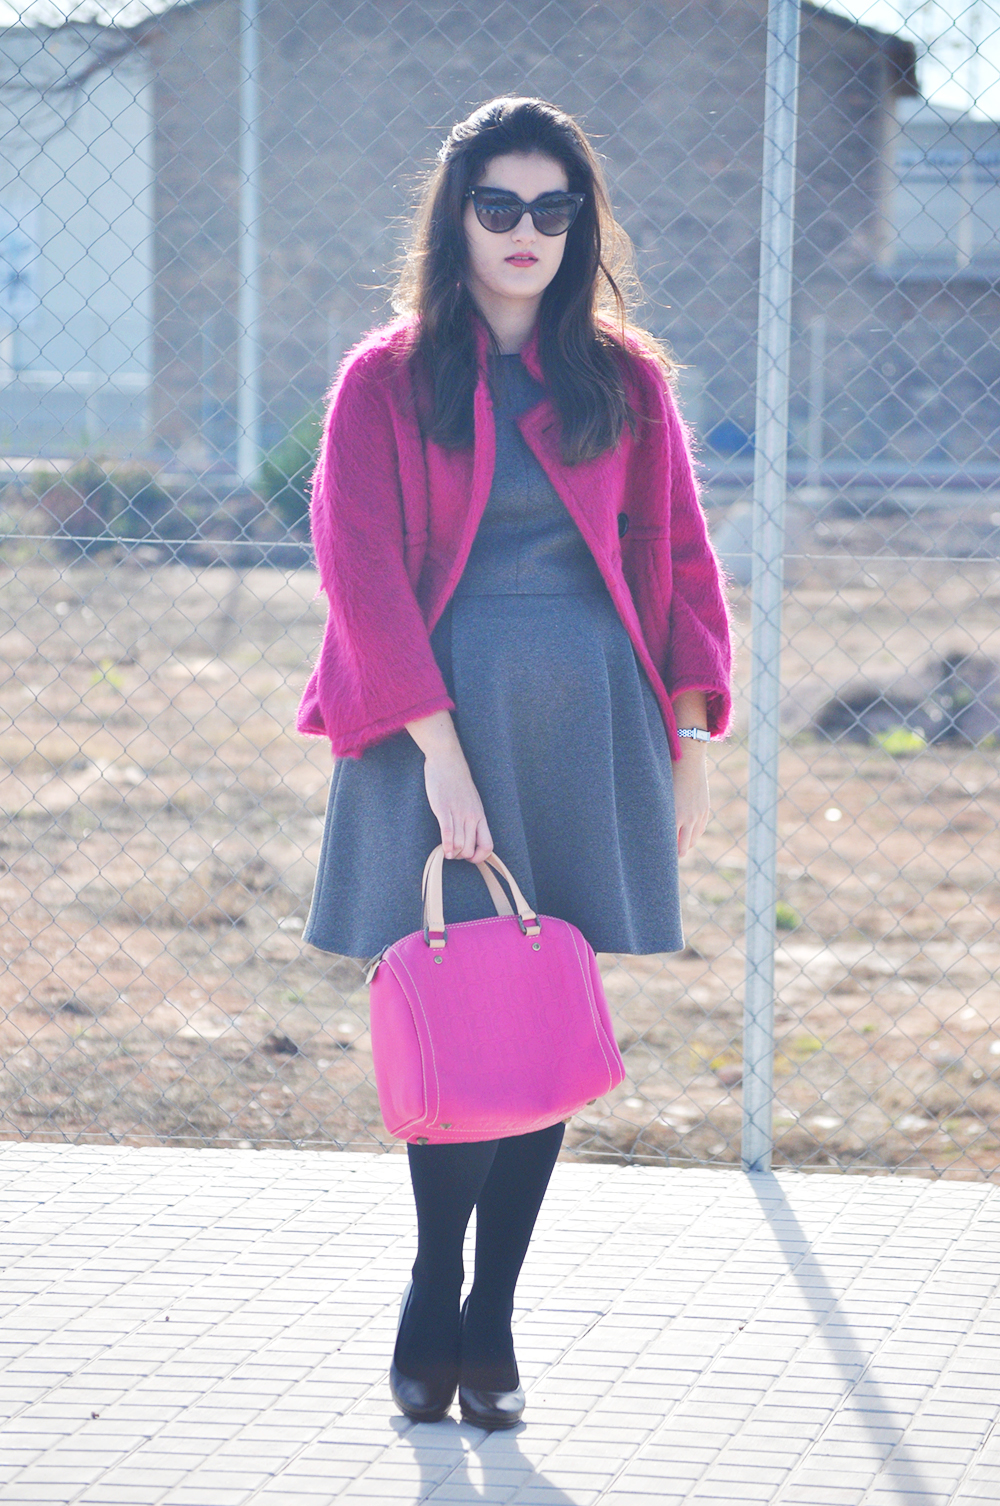 something fashion blogger valencia spain pink maxmara coat vintage carolina herrera andy seven bag small pink, leather CH bag fashion amanda r.